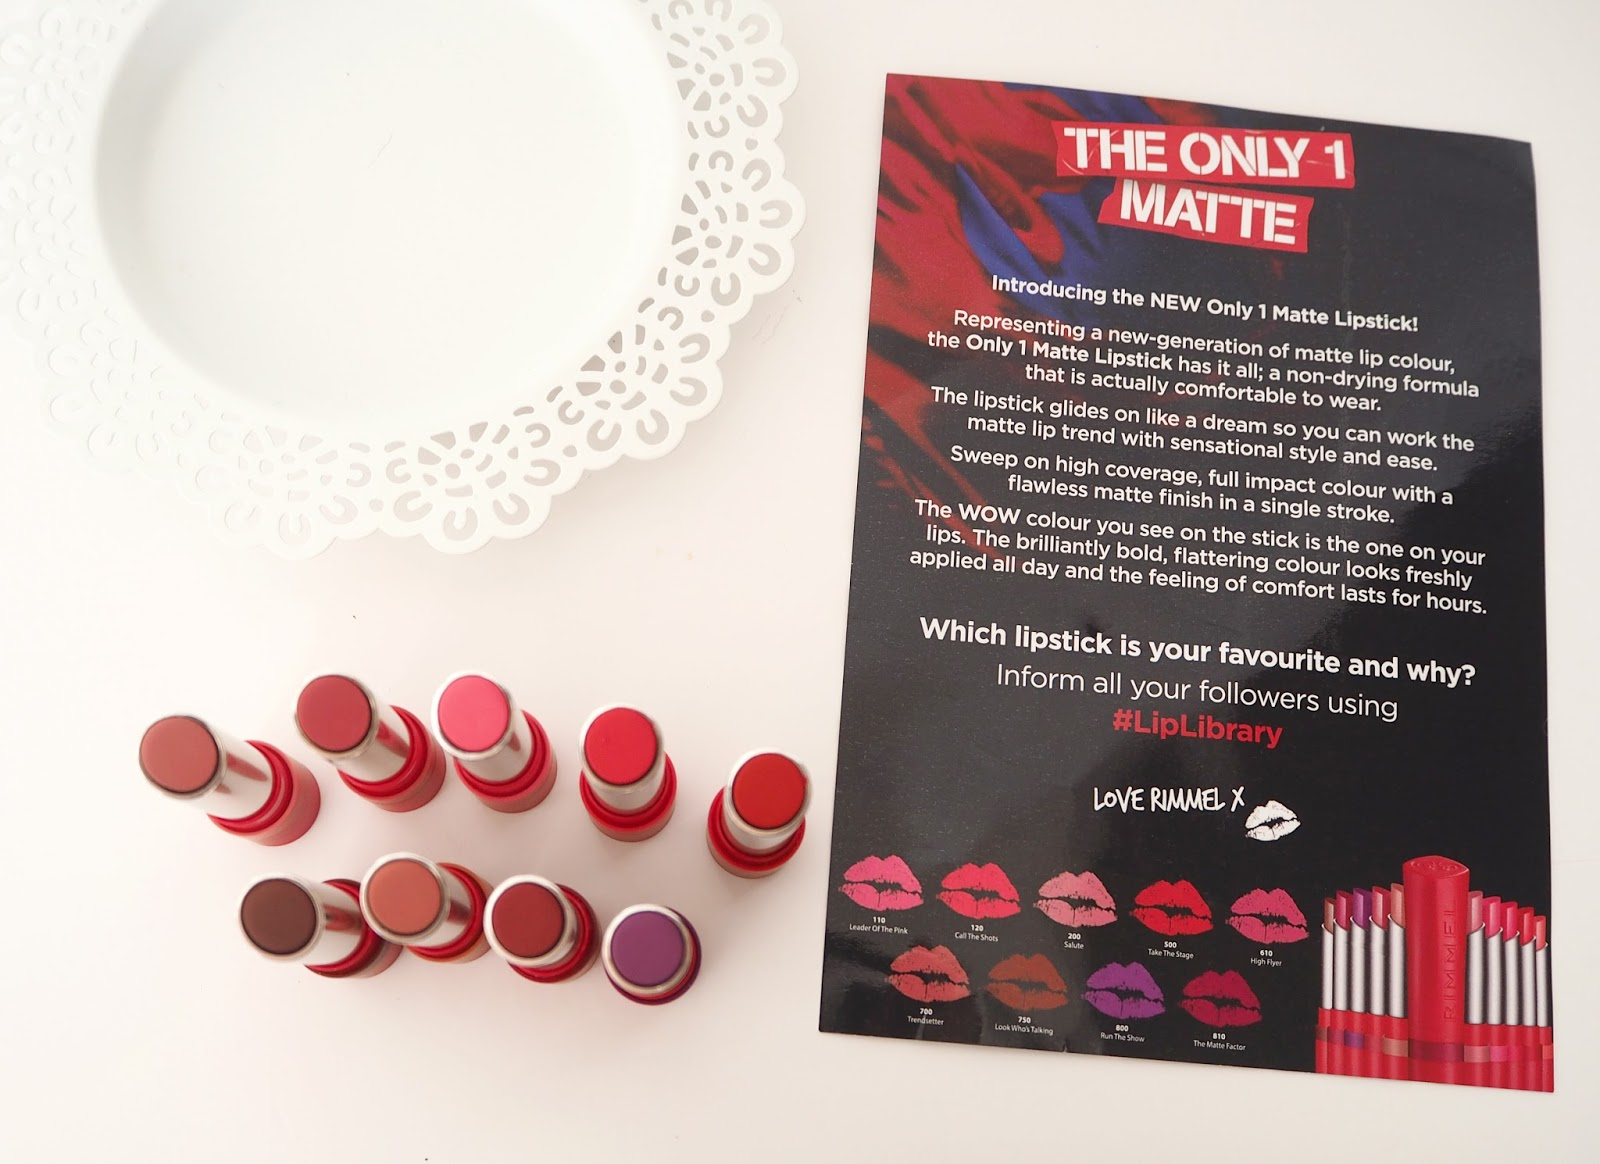 Rimmel London The Only 1 Matte Lipstick Collection, Katie Kirk Loves, Lipstick Swatches, Make Up Swatches, Beauty Blogger, Rimmel London, Matte Lipsticks, Make Up Review, Lipstick Collection, UK Blogger